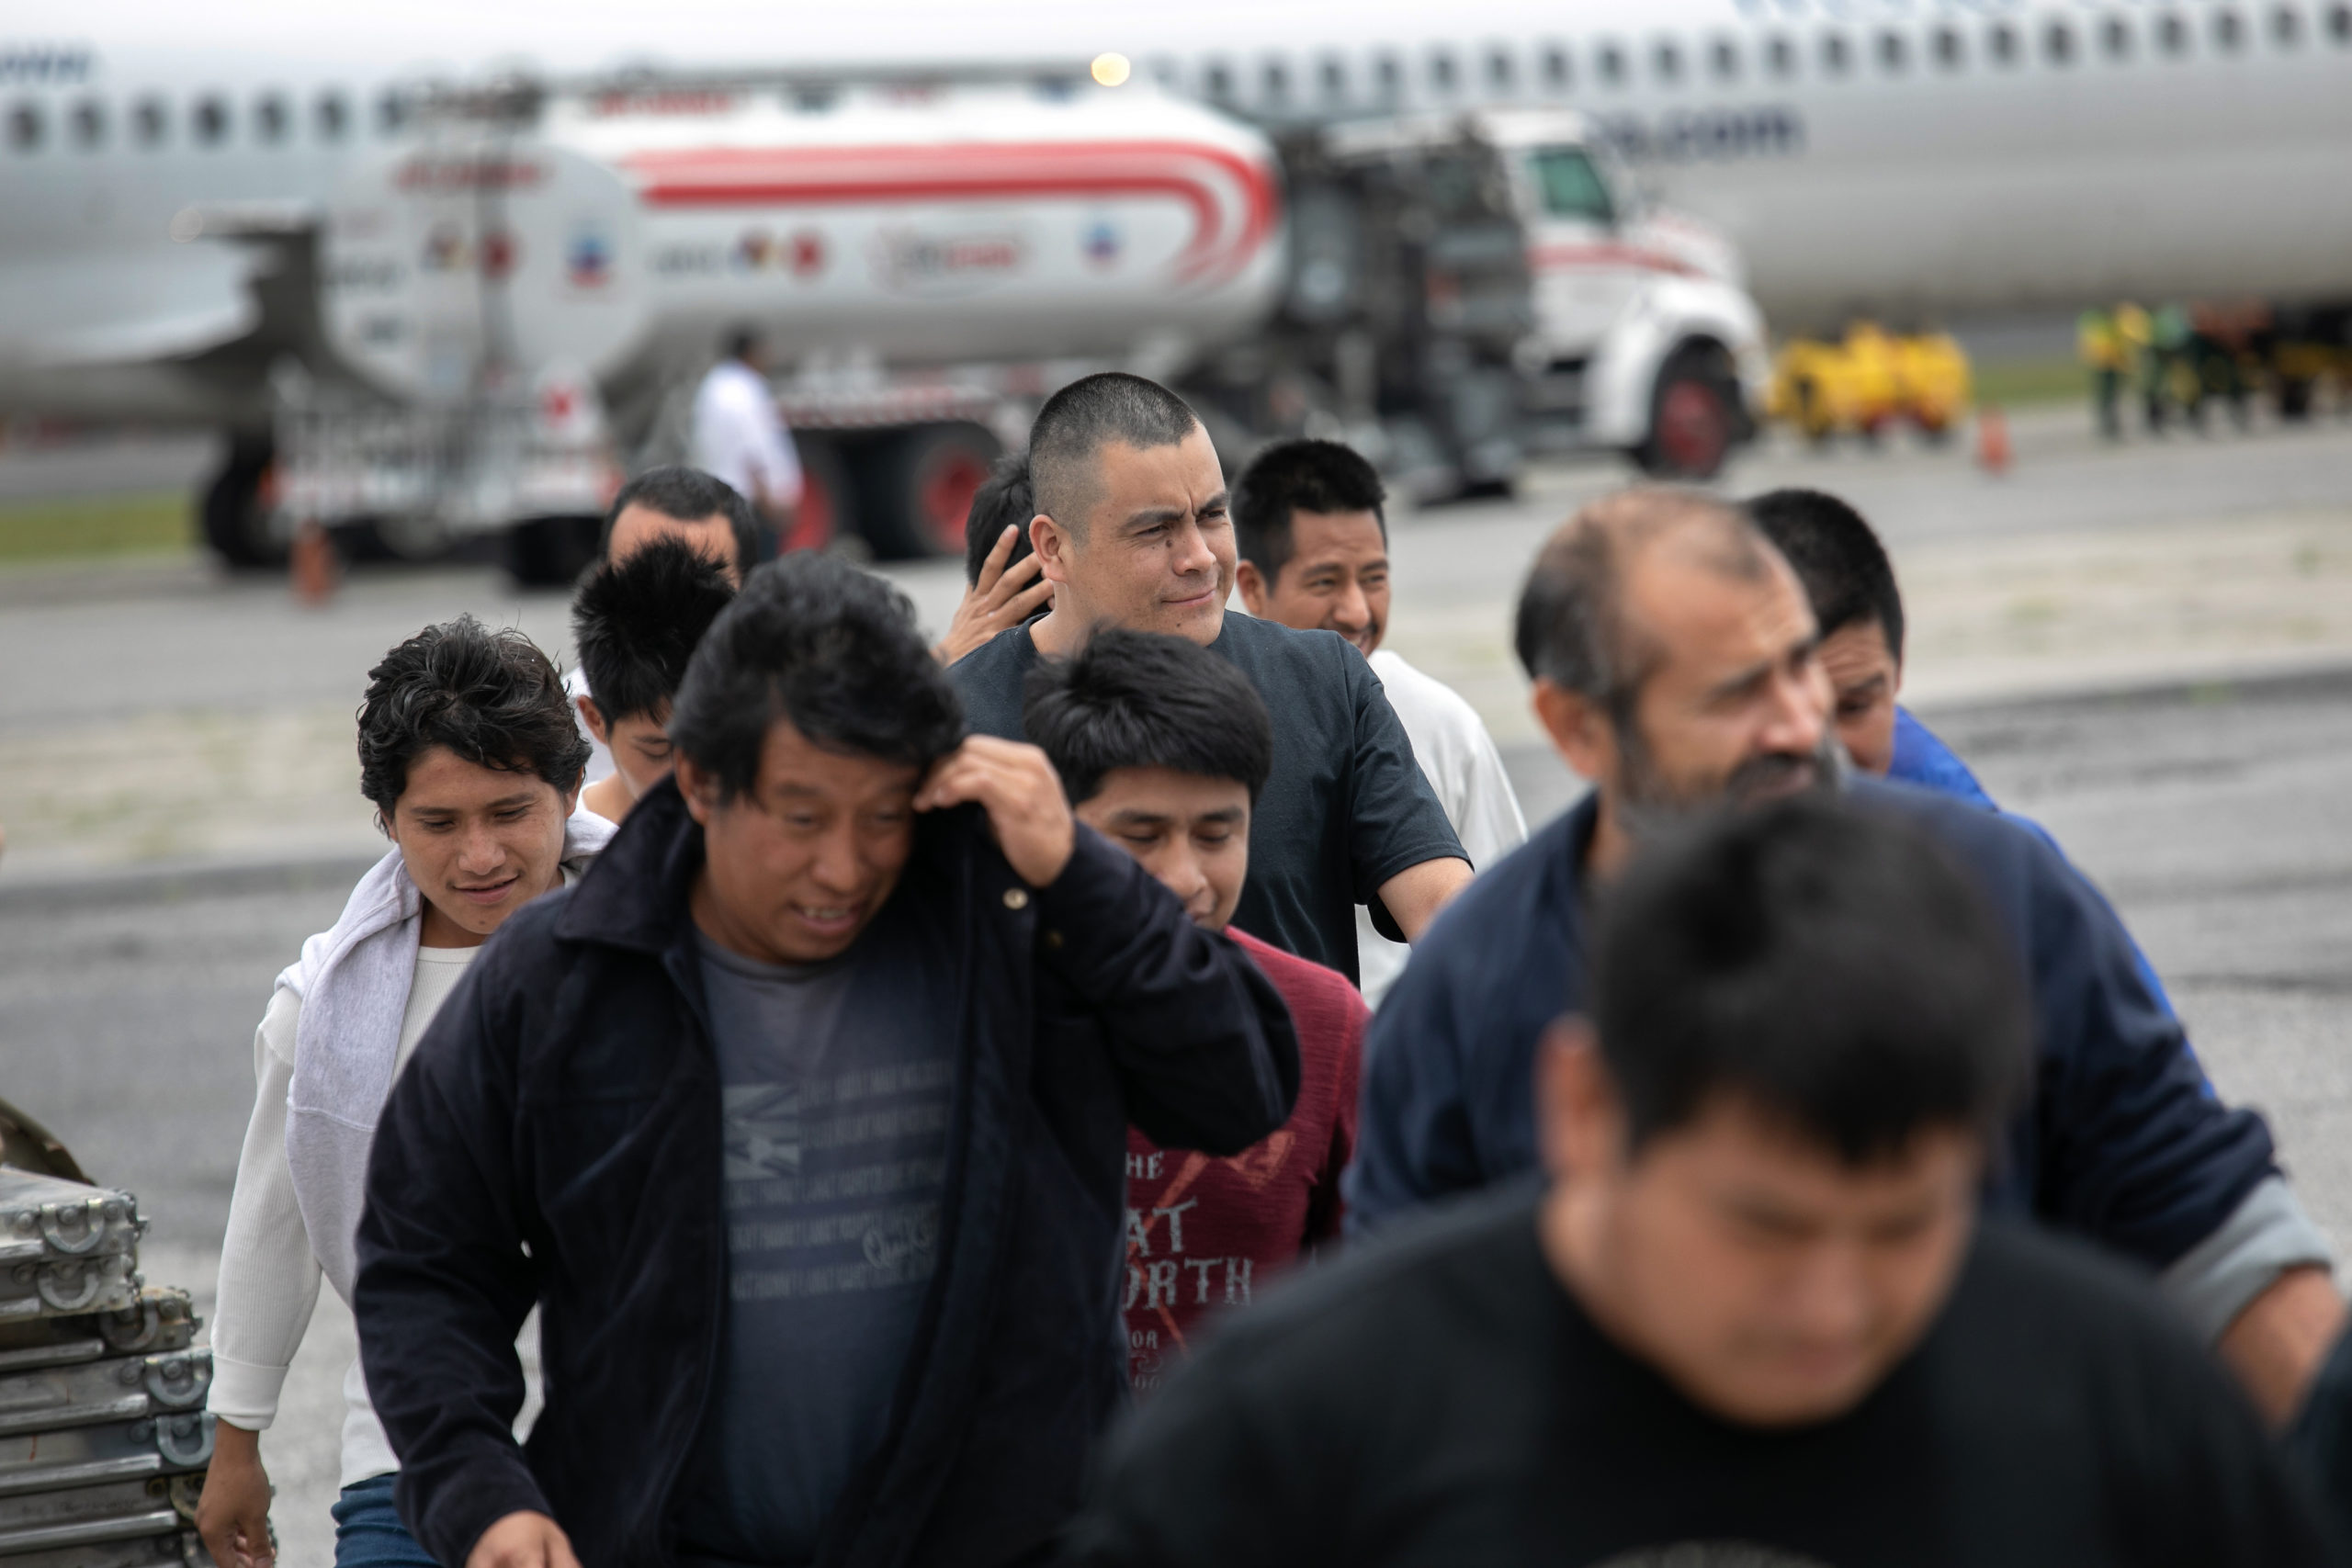 GUATEMALA CITY, GUATEMALA - MAY 30: Guatemalan men walk from a deportation flight, chartered by the U.S. Government, after being sent back from the United States on May 30, 2019 in Guatemala City, Guatemala. U.S. Immigration and Customs Enforcement (ICE) deports some 2,000 people per week to Guatemala from various U.S. cities. (Photo by John Moore/Getty Images)